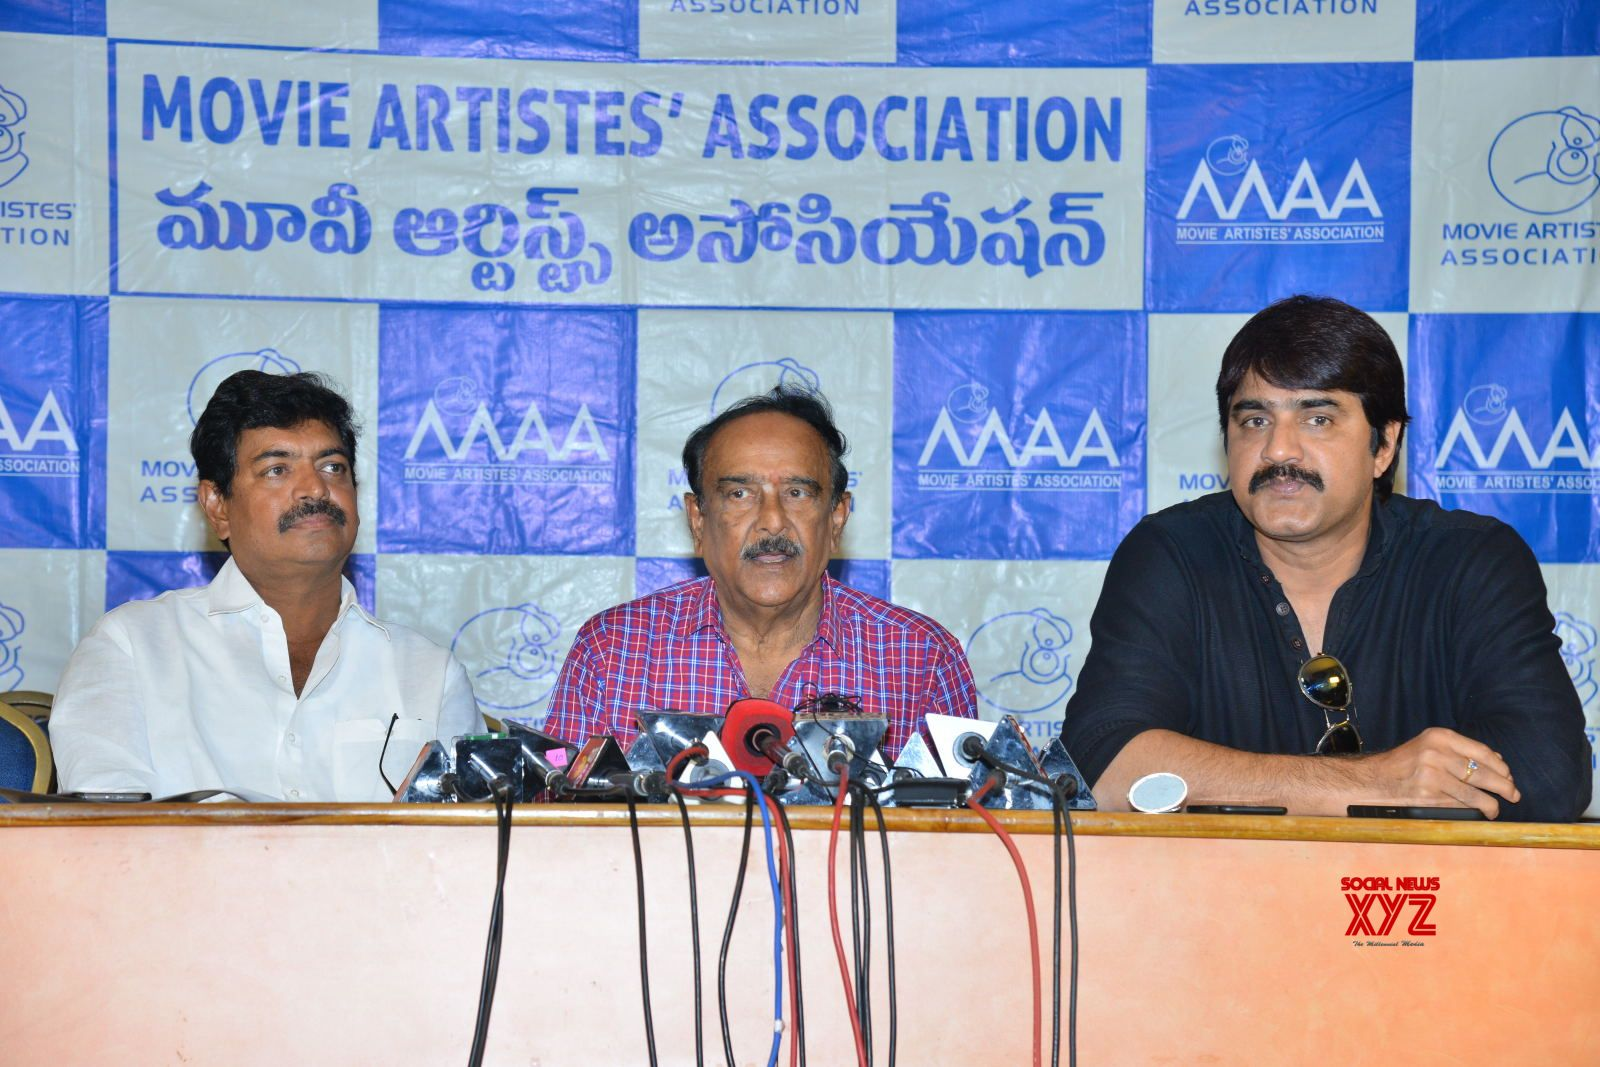 Image result for maa association